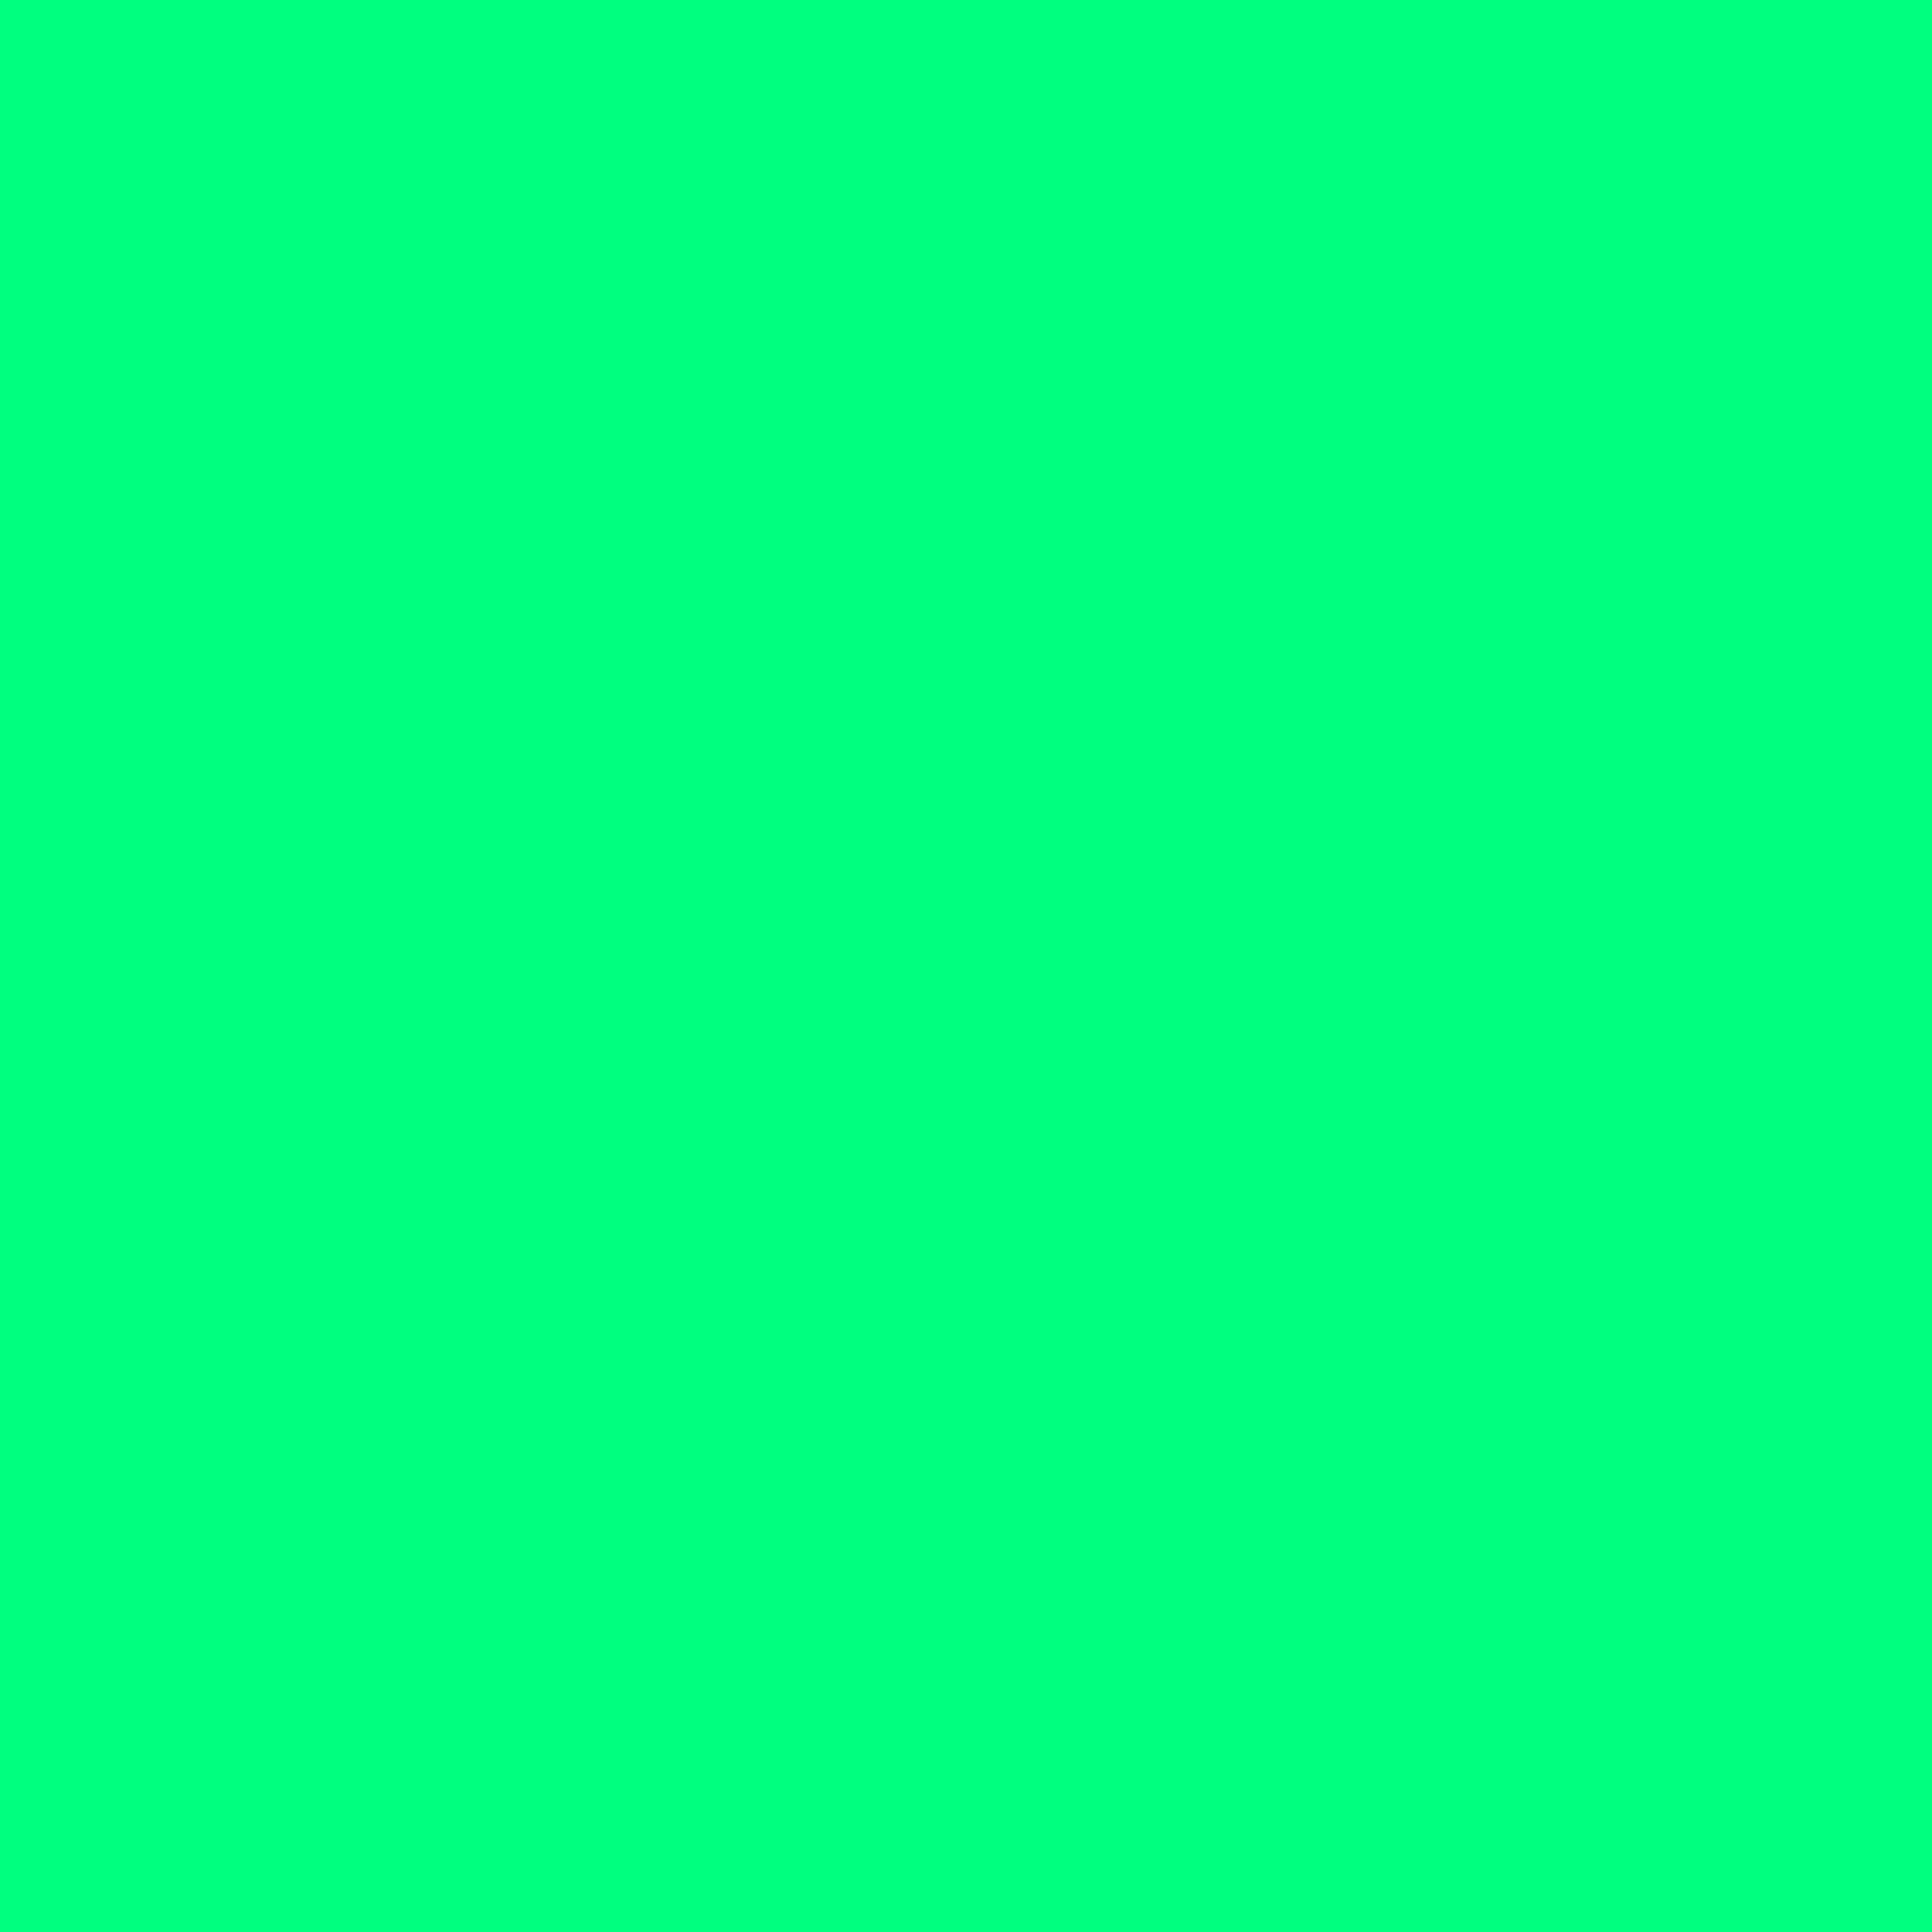 2732x2732 Guppie Green Solid Color Background